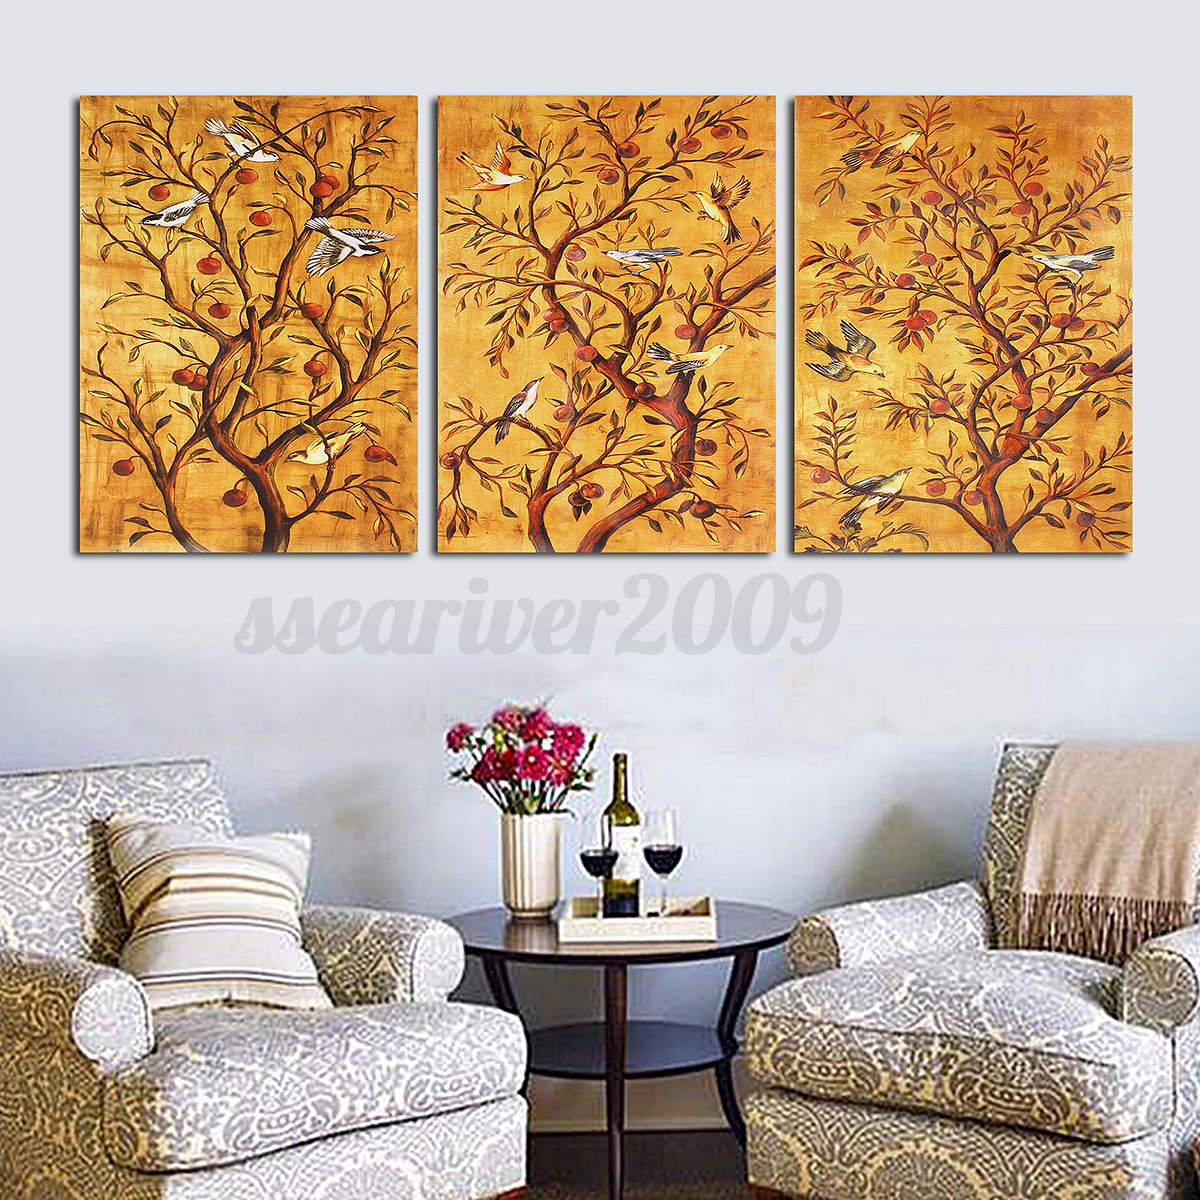 Large 3 Panels Modern Abstract Canvas Art Oil Painting